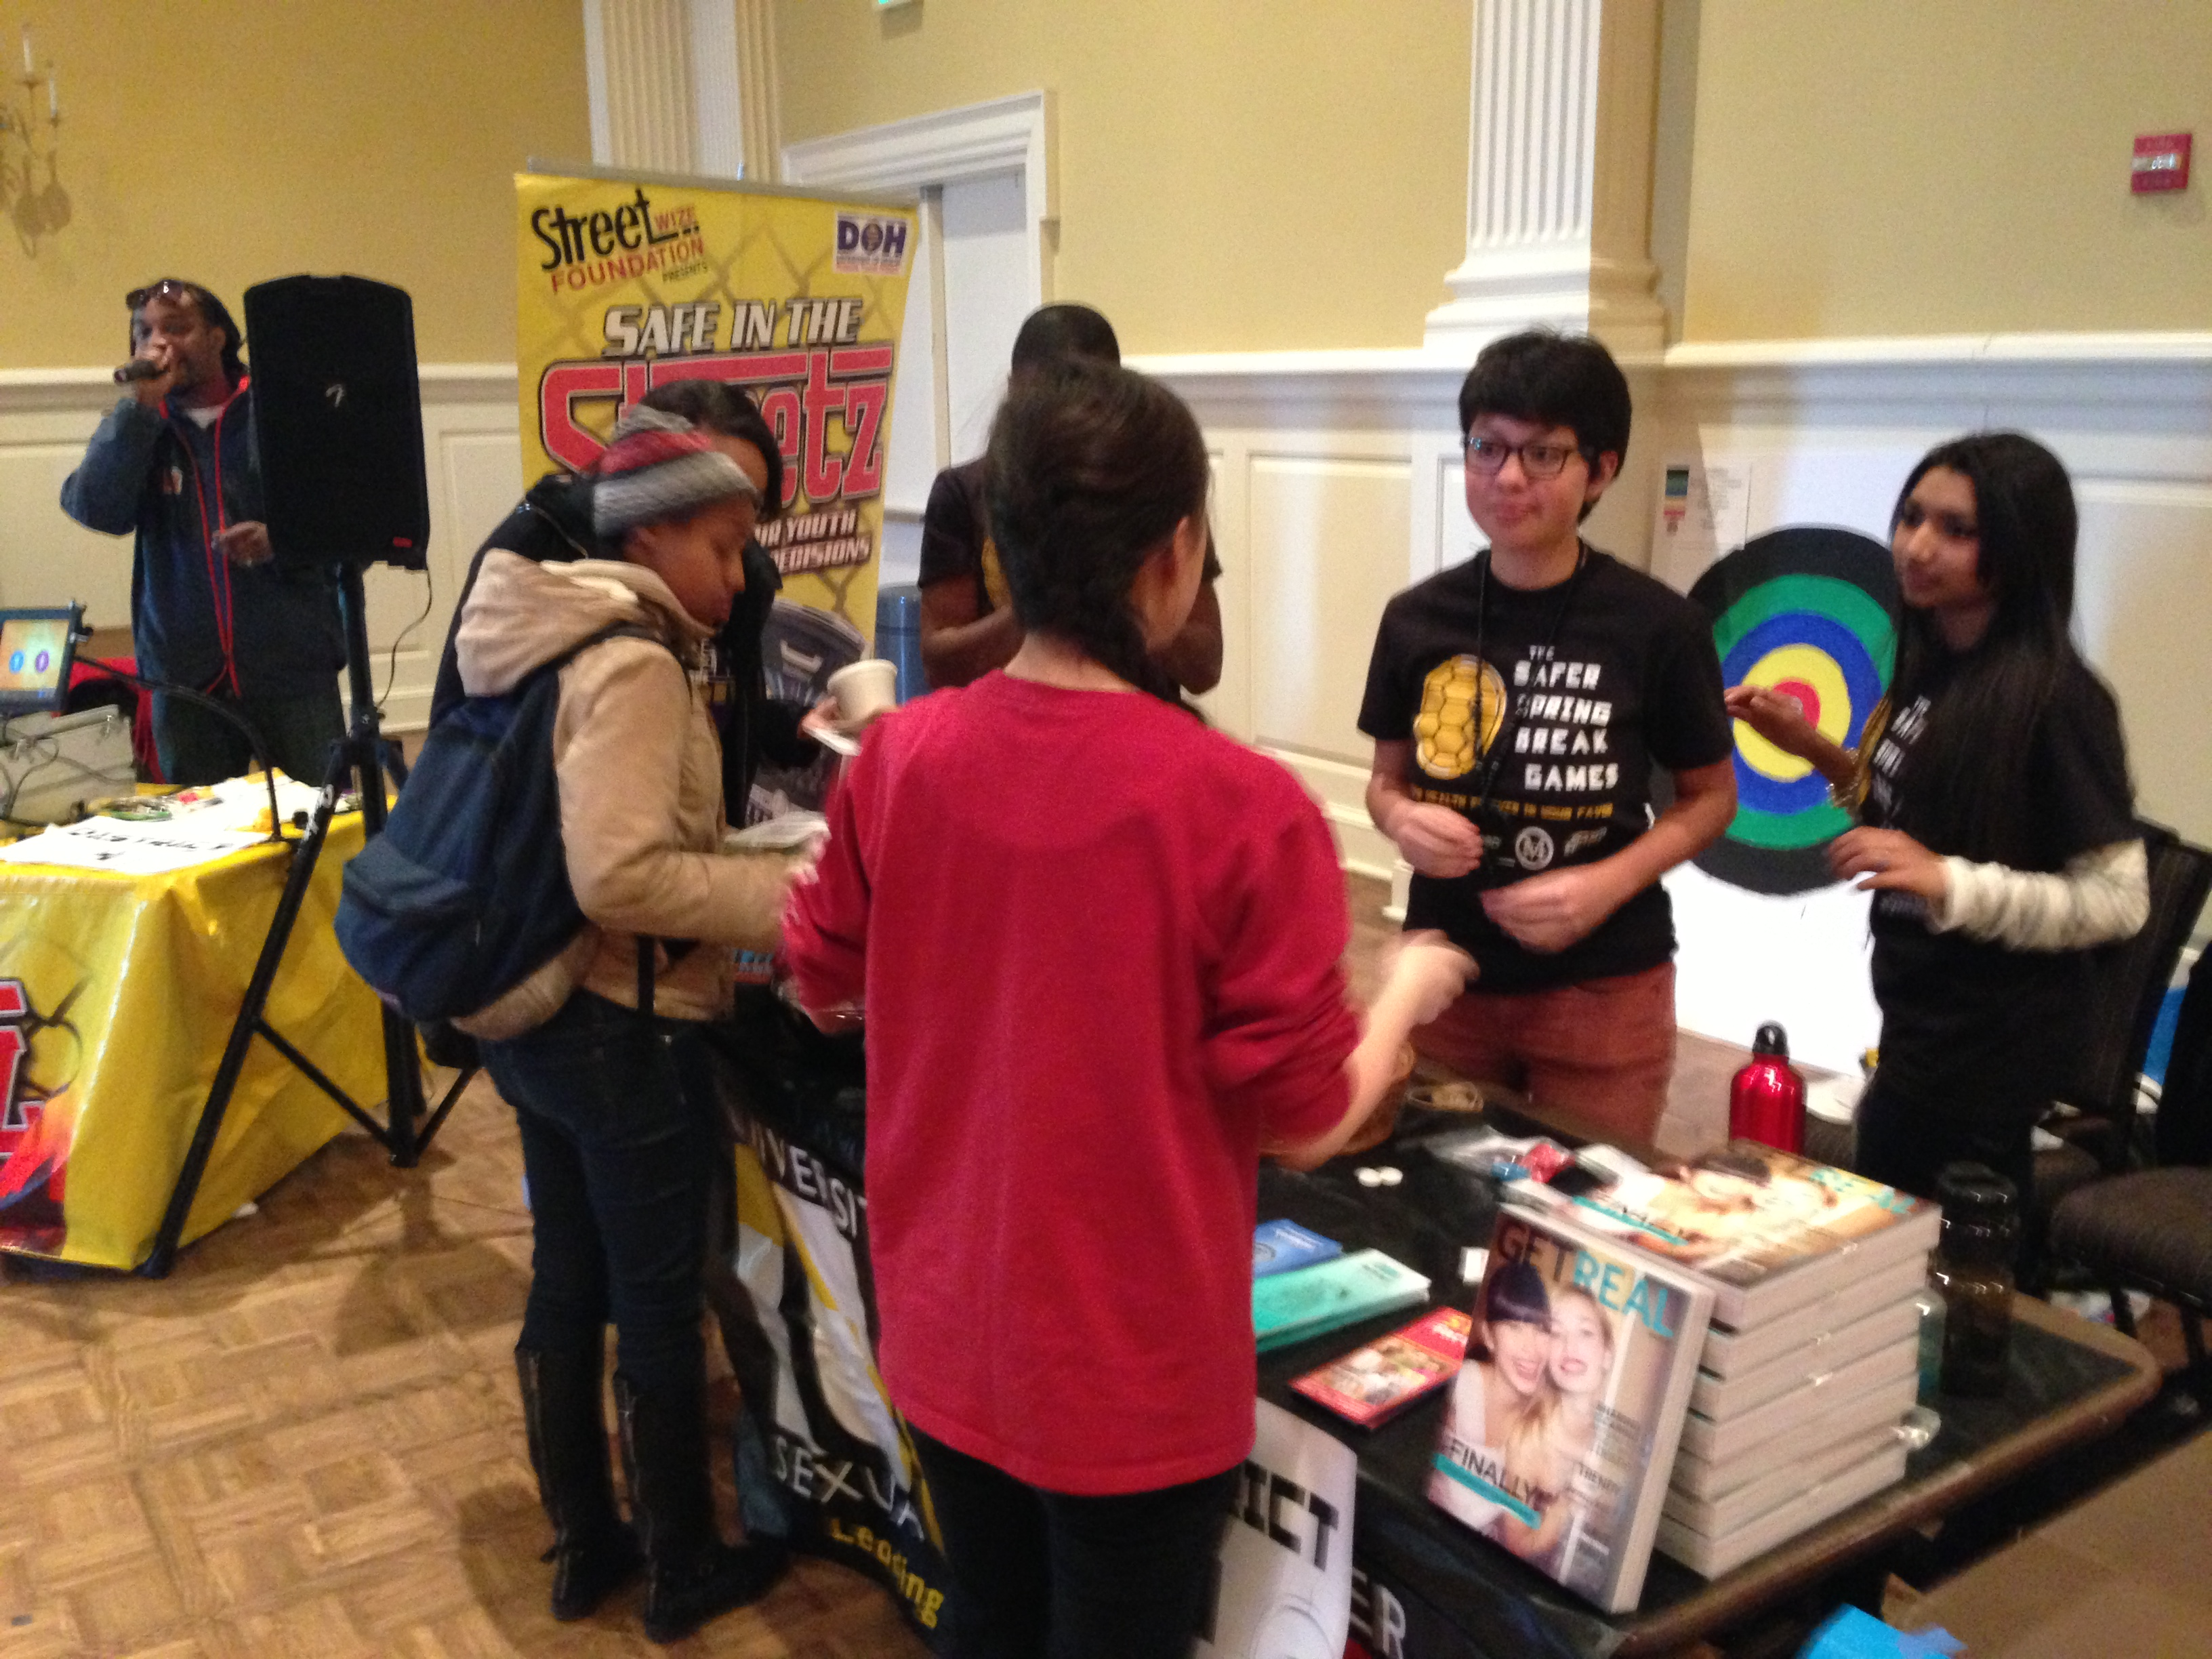 UMD Spring Break Games Student Health Fair is Safe in the Streetz